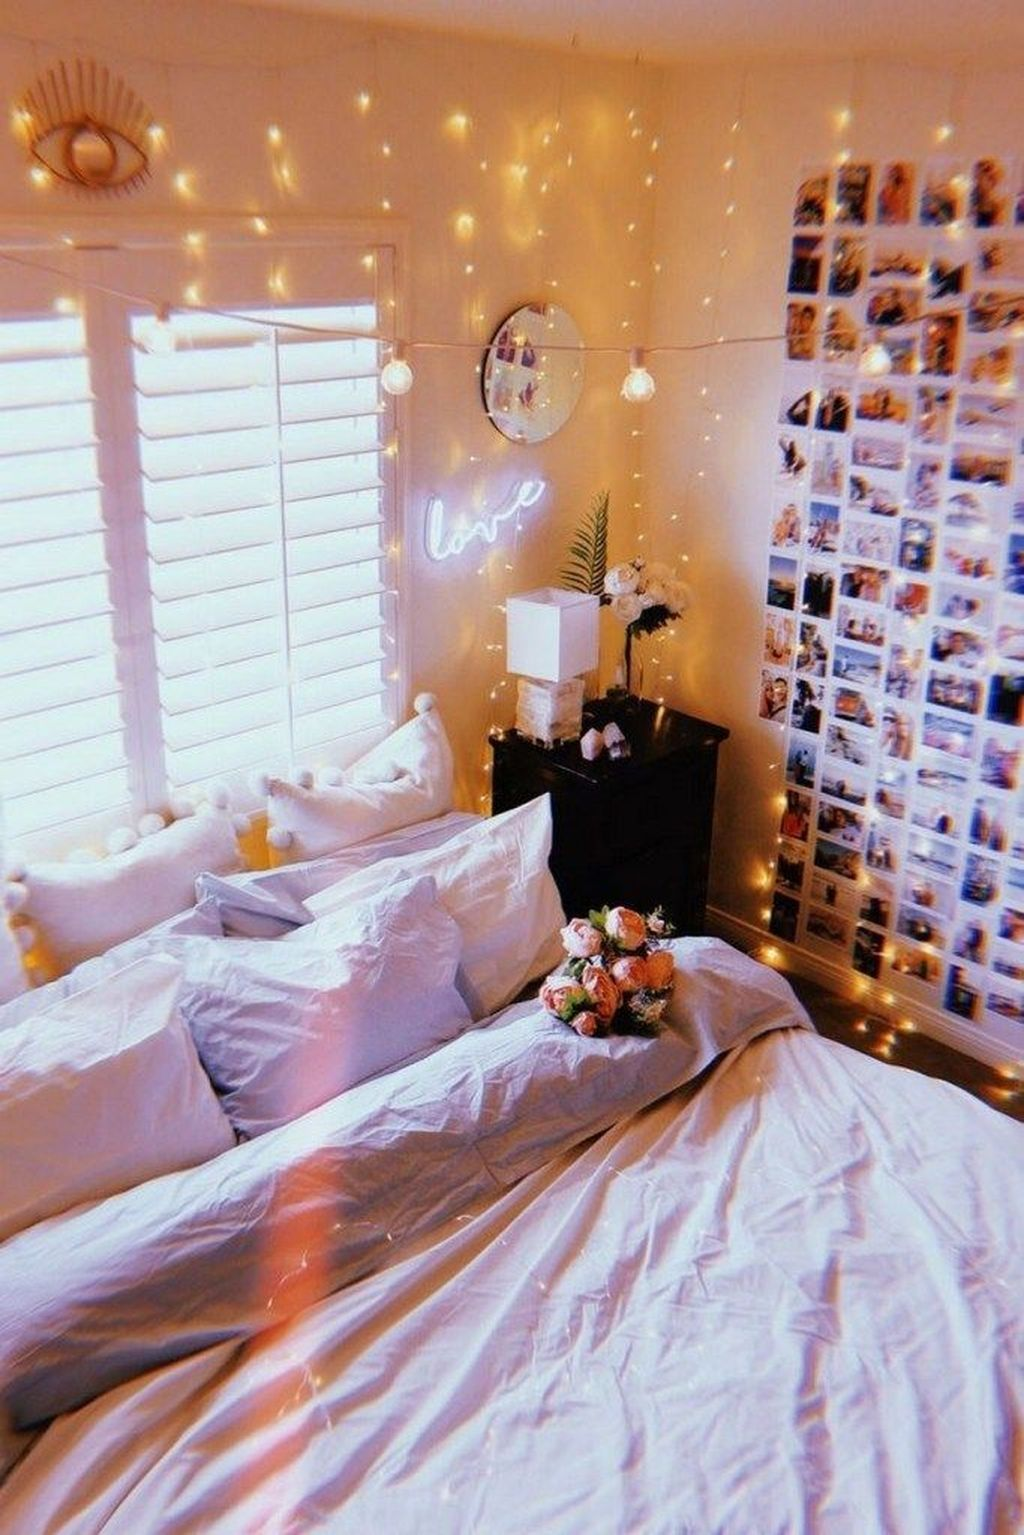 20 Cutest Teenage Girl Bedroom Decoration Ideas Small Room Bedroom Stylish Room Dorm Room Decor